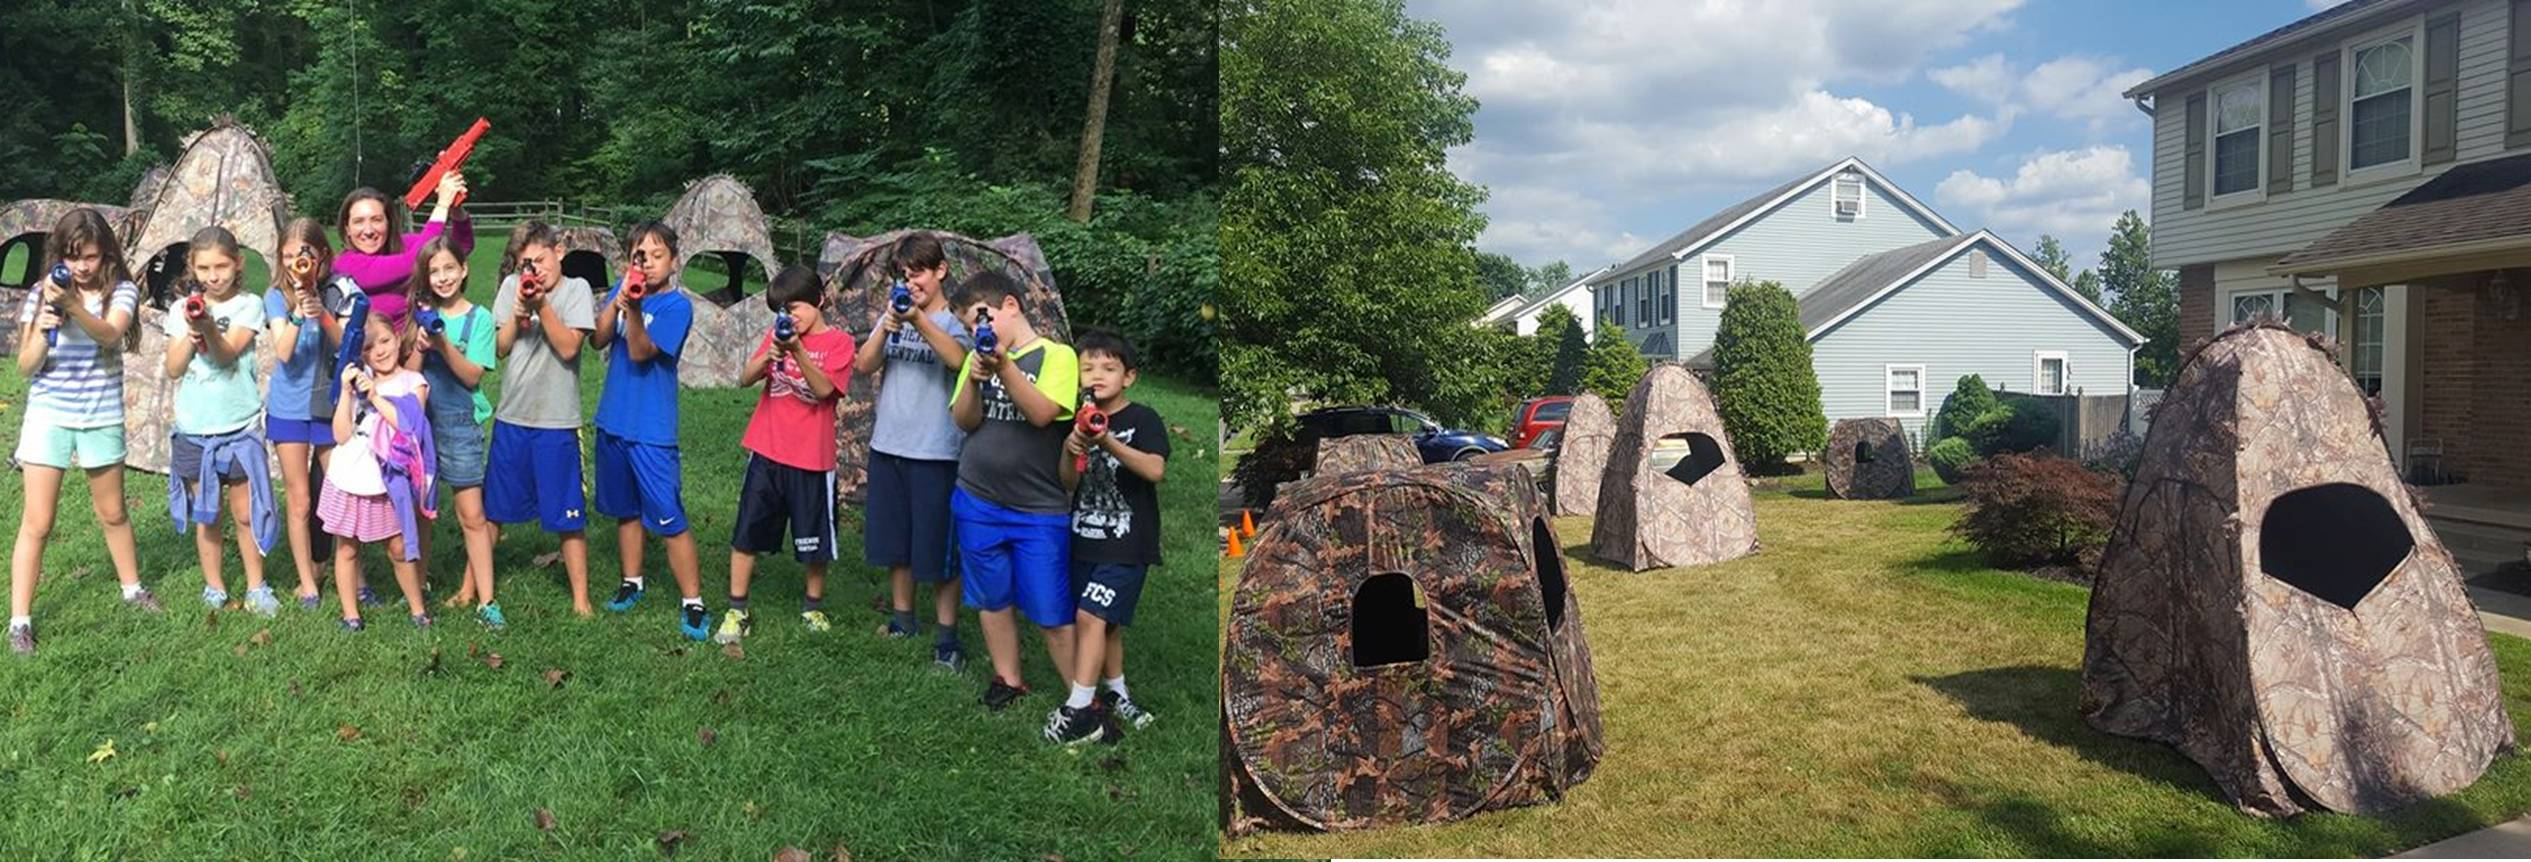 Laser tag party in New Jersey, Philadelphia and Delaware